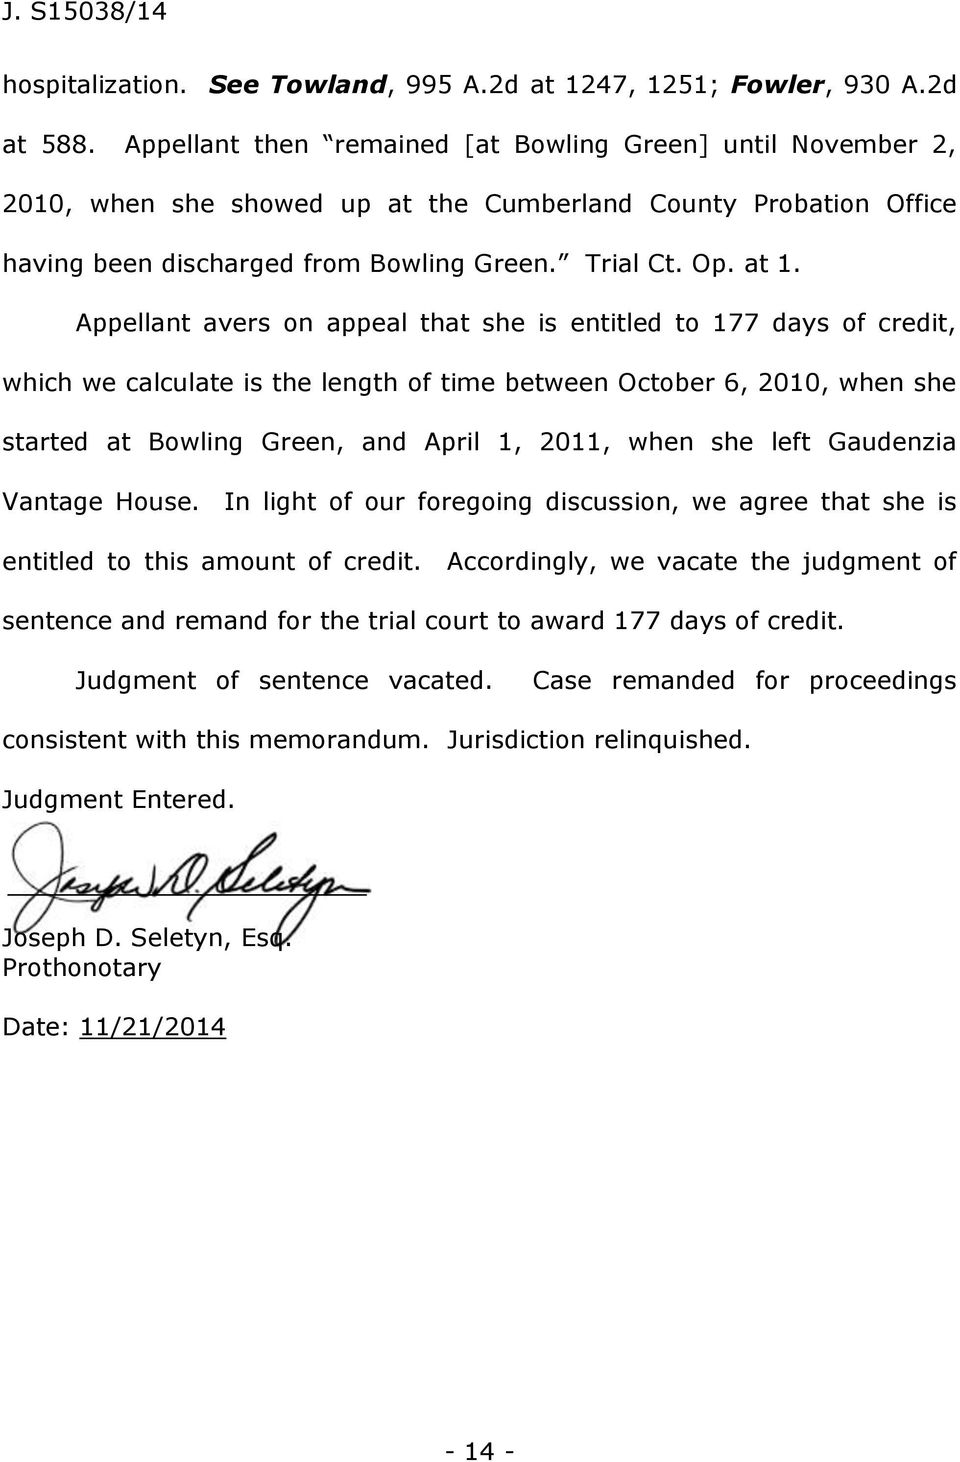 Appellant avers on appeal that she is entitled to 177 days of credit, which we calculate is the length of time between October 6, 2010, when she started at Bowling Green, and April 1, 2011, when she